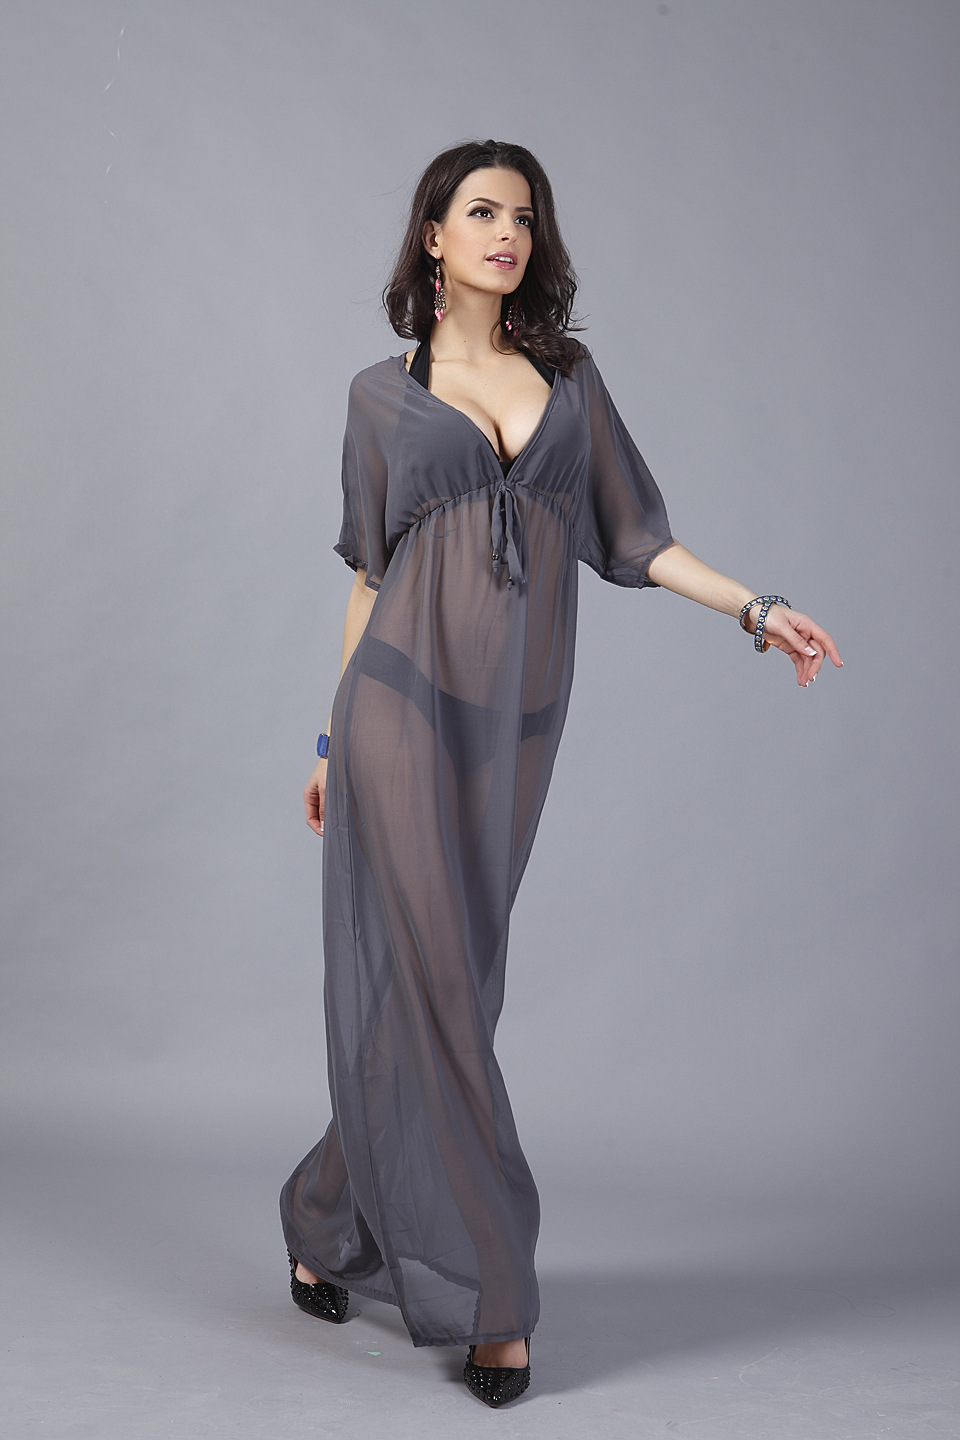 2015 new fashion women honeymoon maxi long dress women summer chiffon deep v beach dress sexy. Black Bedroom Furniture Sets. Home Design Ideas